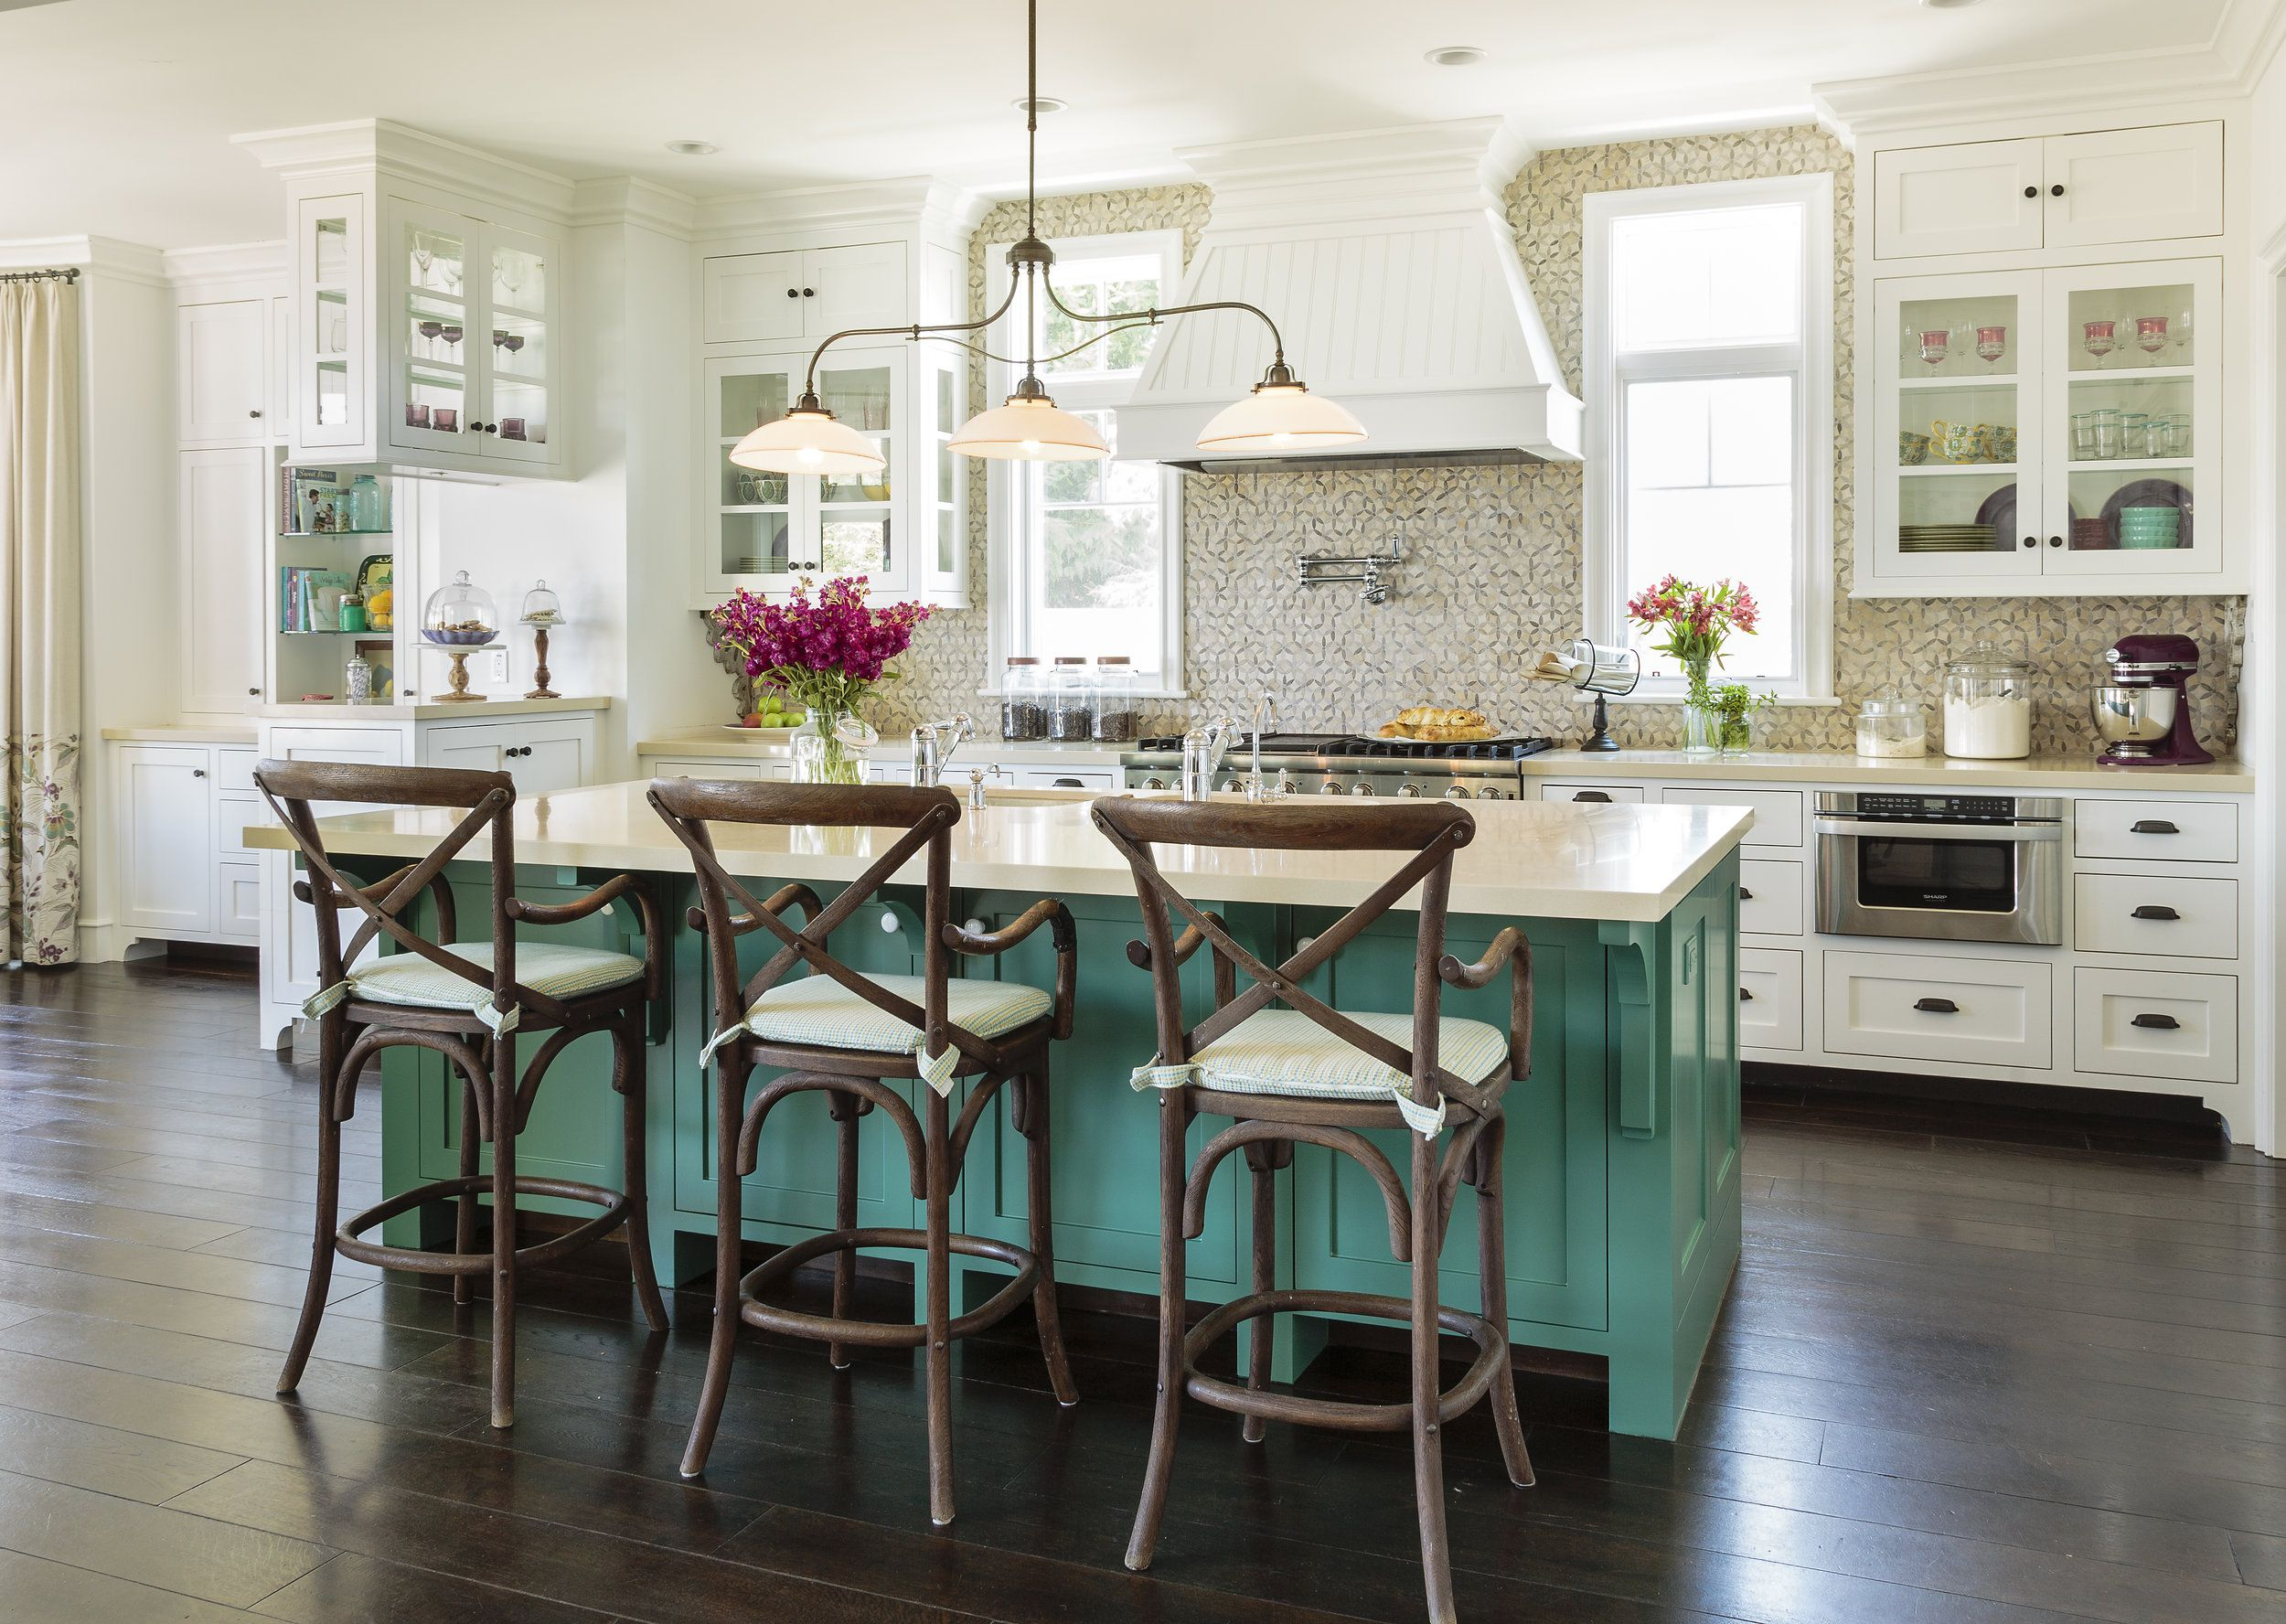 11 Modern French Country Kitchen Ideas on marble kitchen countertops with backsplash, country kitchen backsplash ideas, french country kitchen tile backsplash,